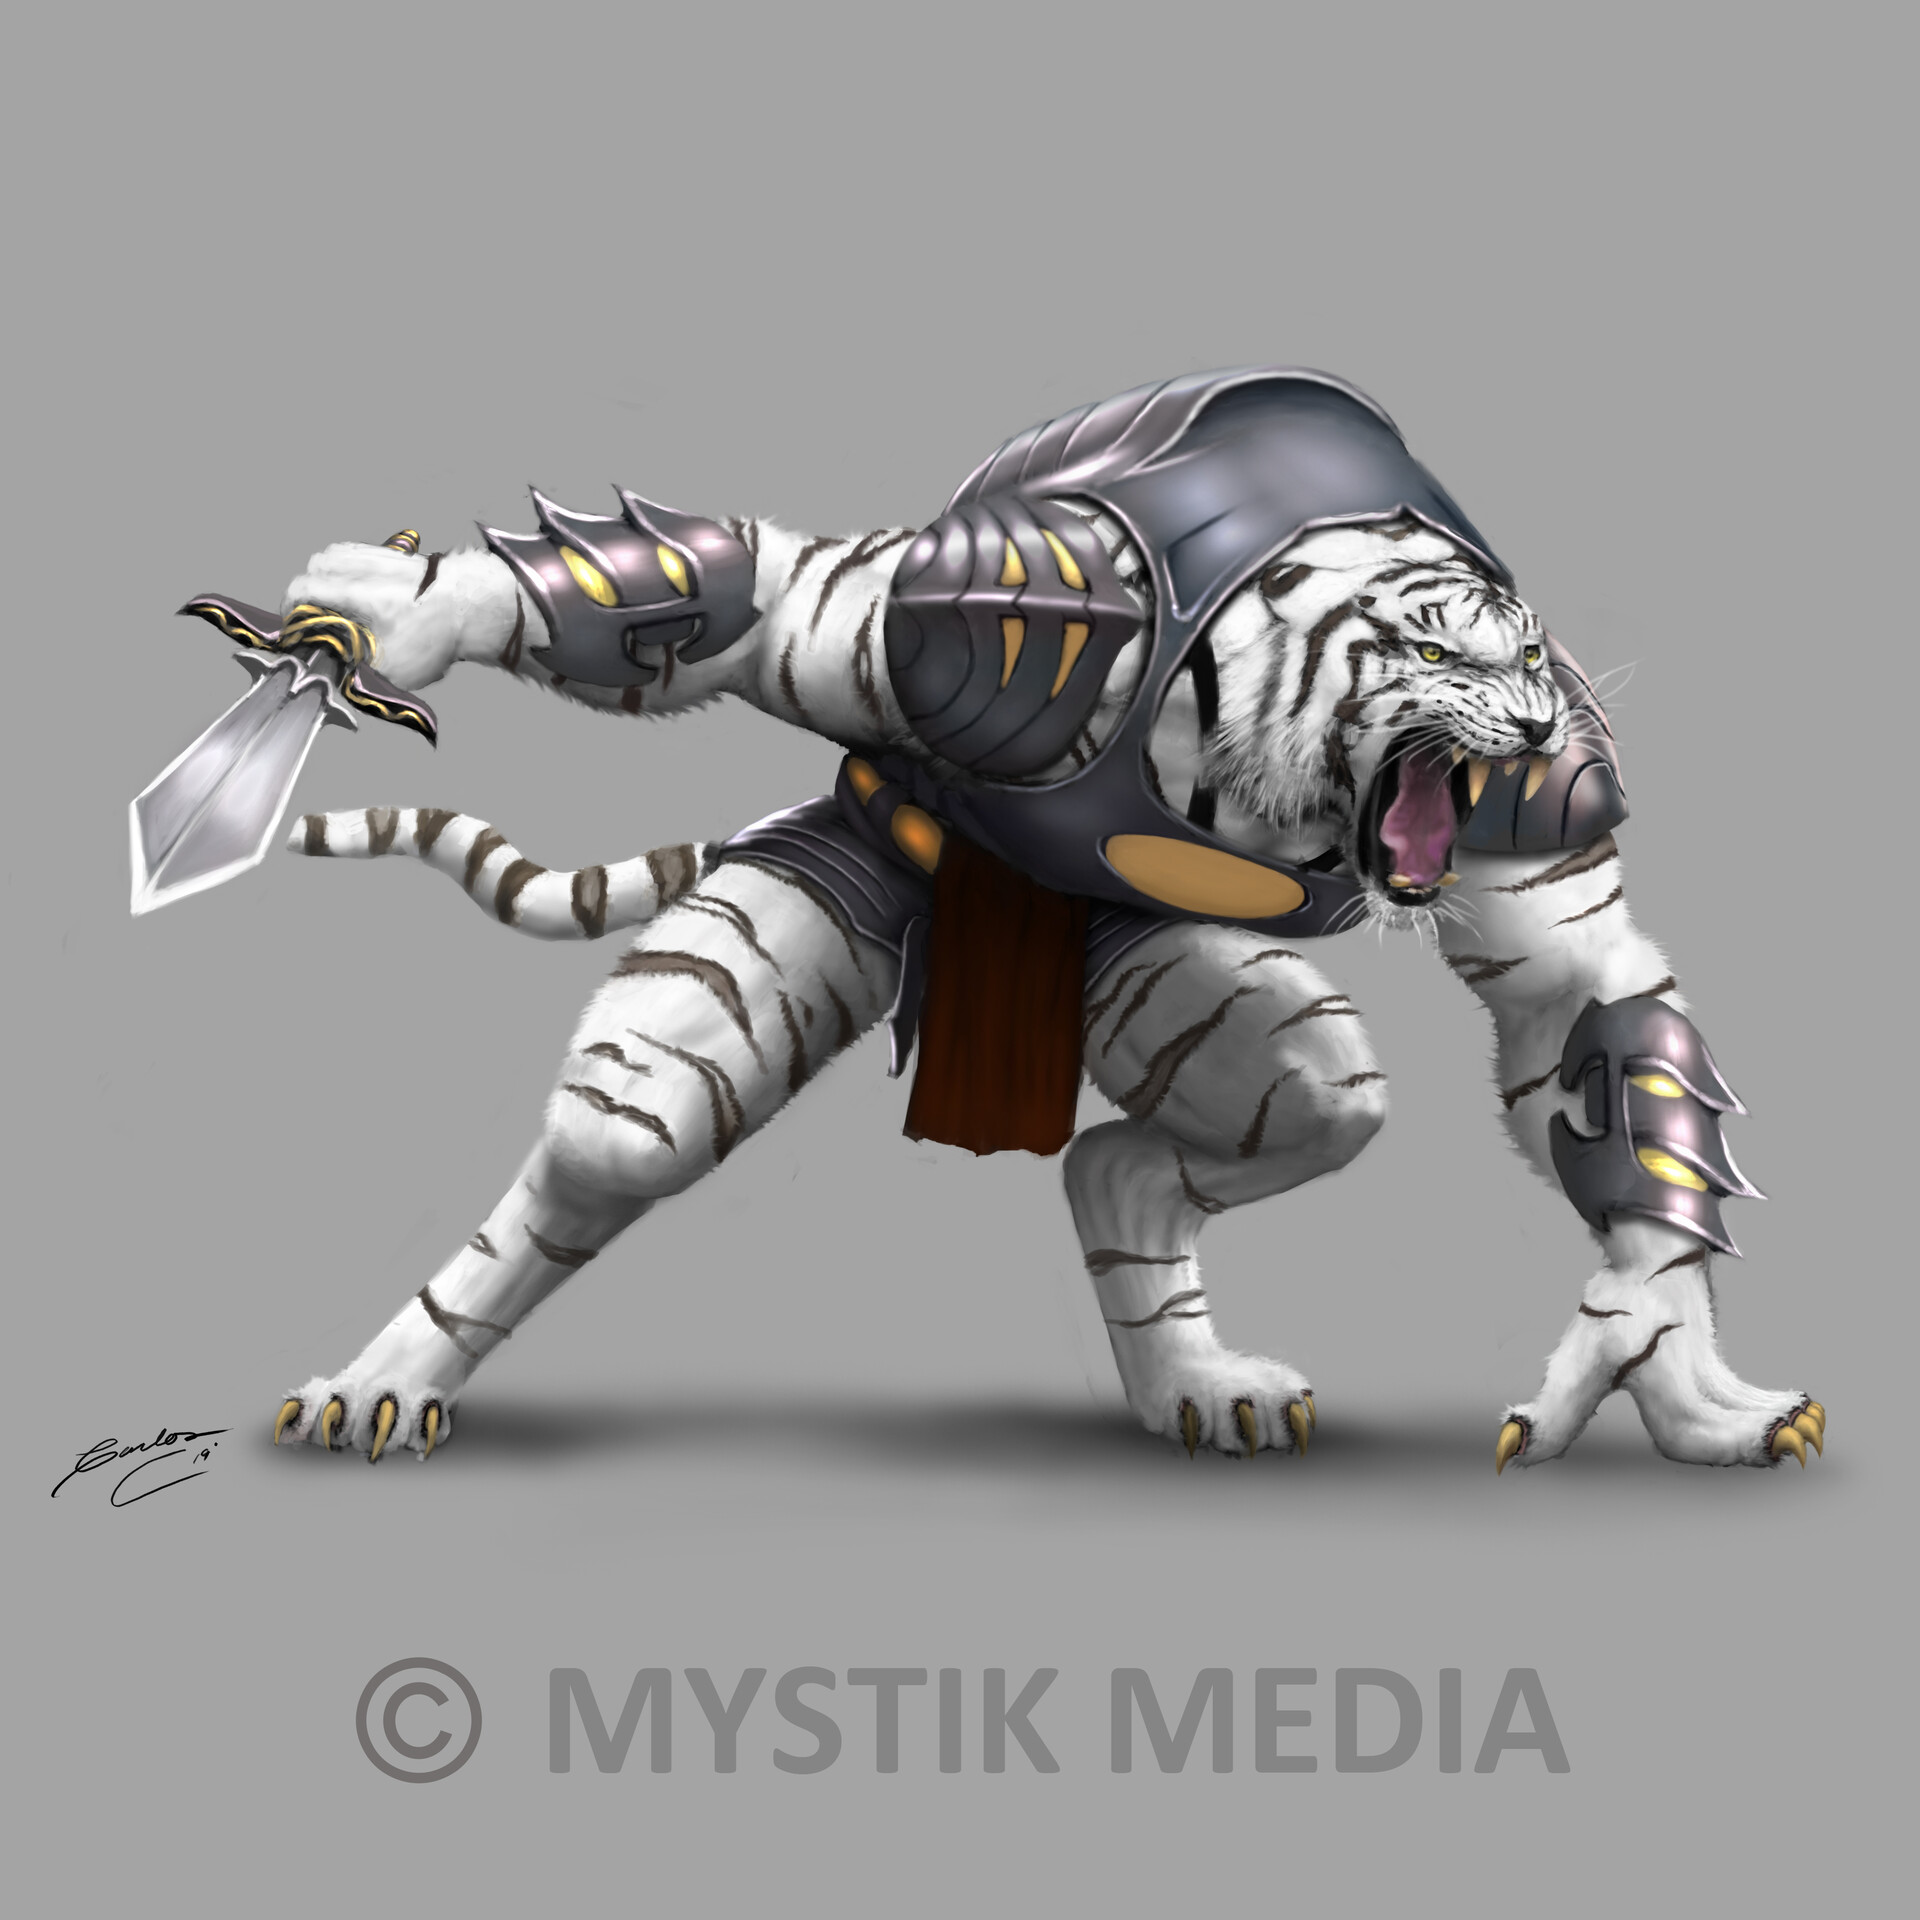 Carlos contreras white tiger warrior character